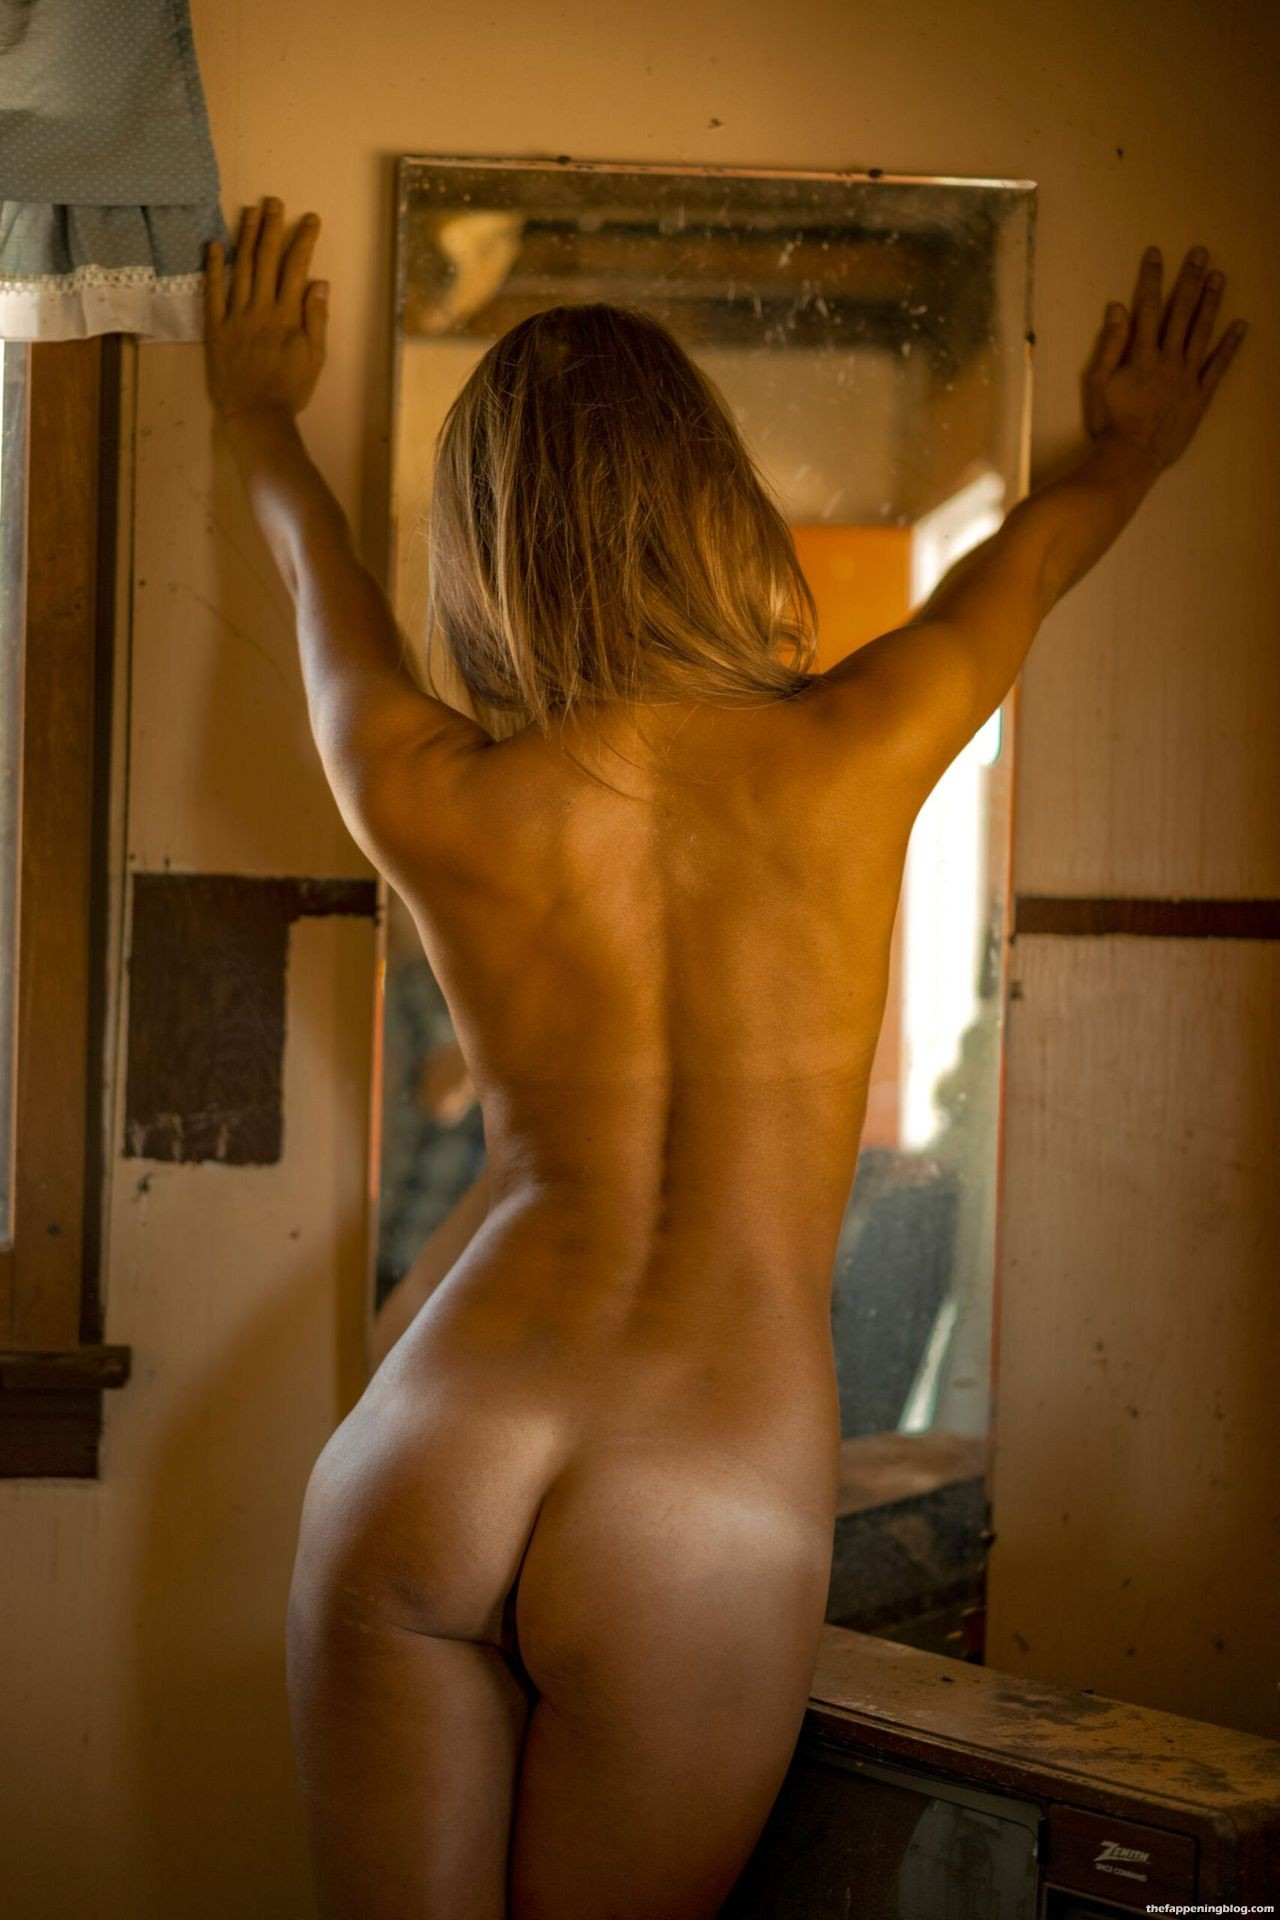 Marisa-Papen-Stunning-Naked-Body-10-scaled1-thefappeningblog.com_.jpg